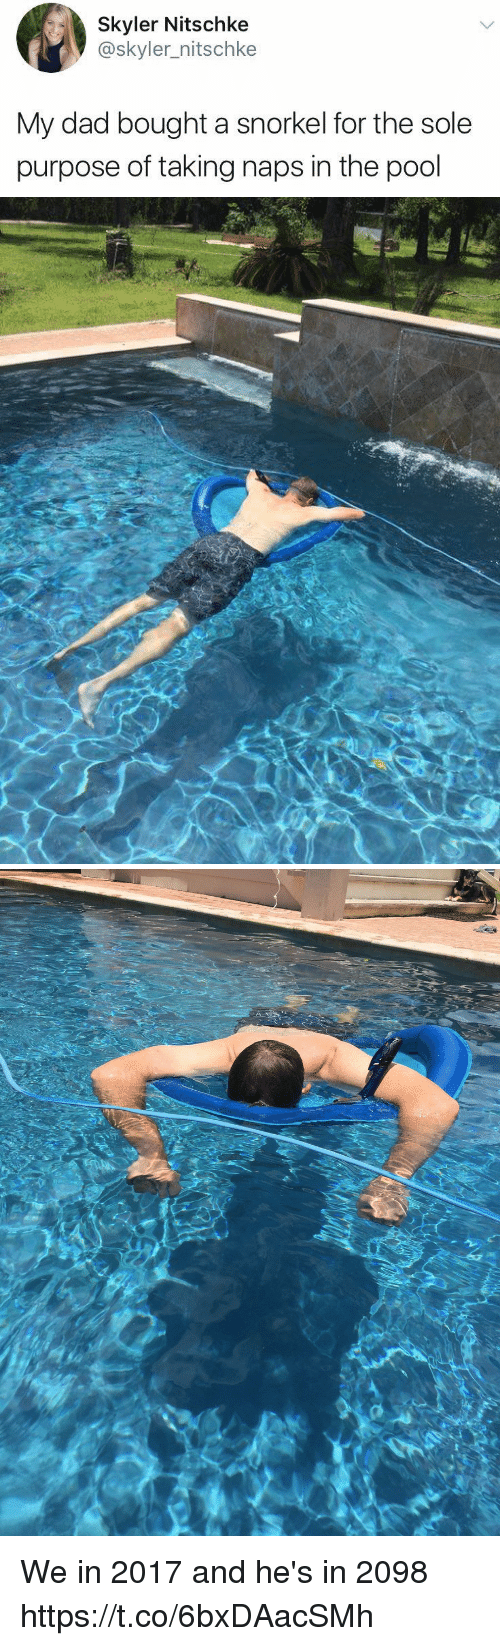 skyler: Skyler Nitschke  @skyler_nitschke  My dad bought a snorkel for the sole  purpose of taking naps in the pool We in 2017 and he's in 2098 https://t.co/6bxDAacSMh